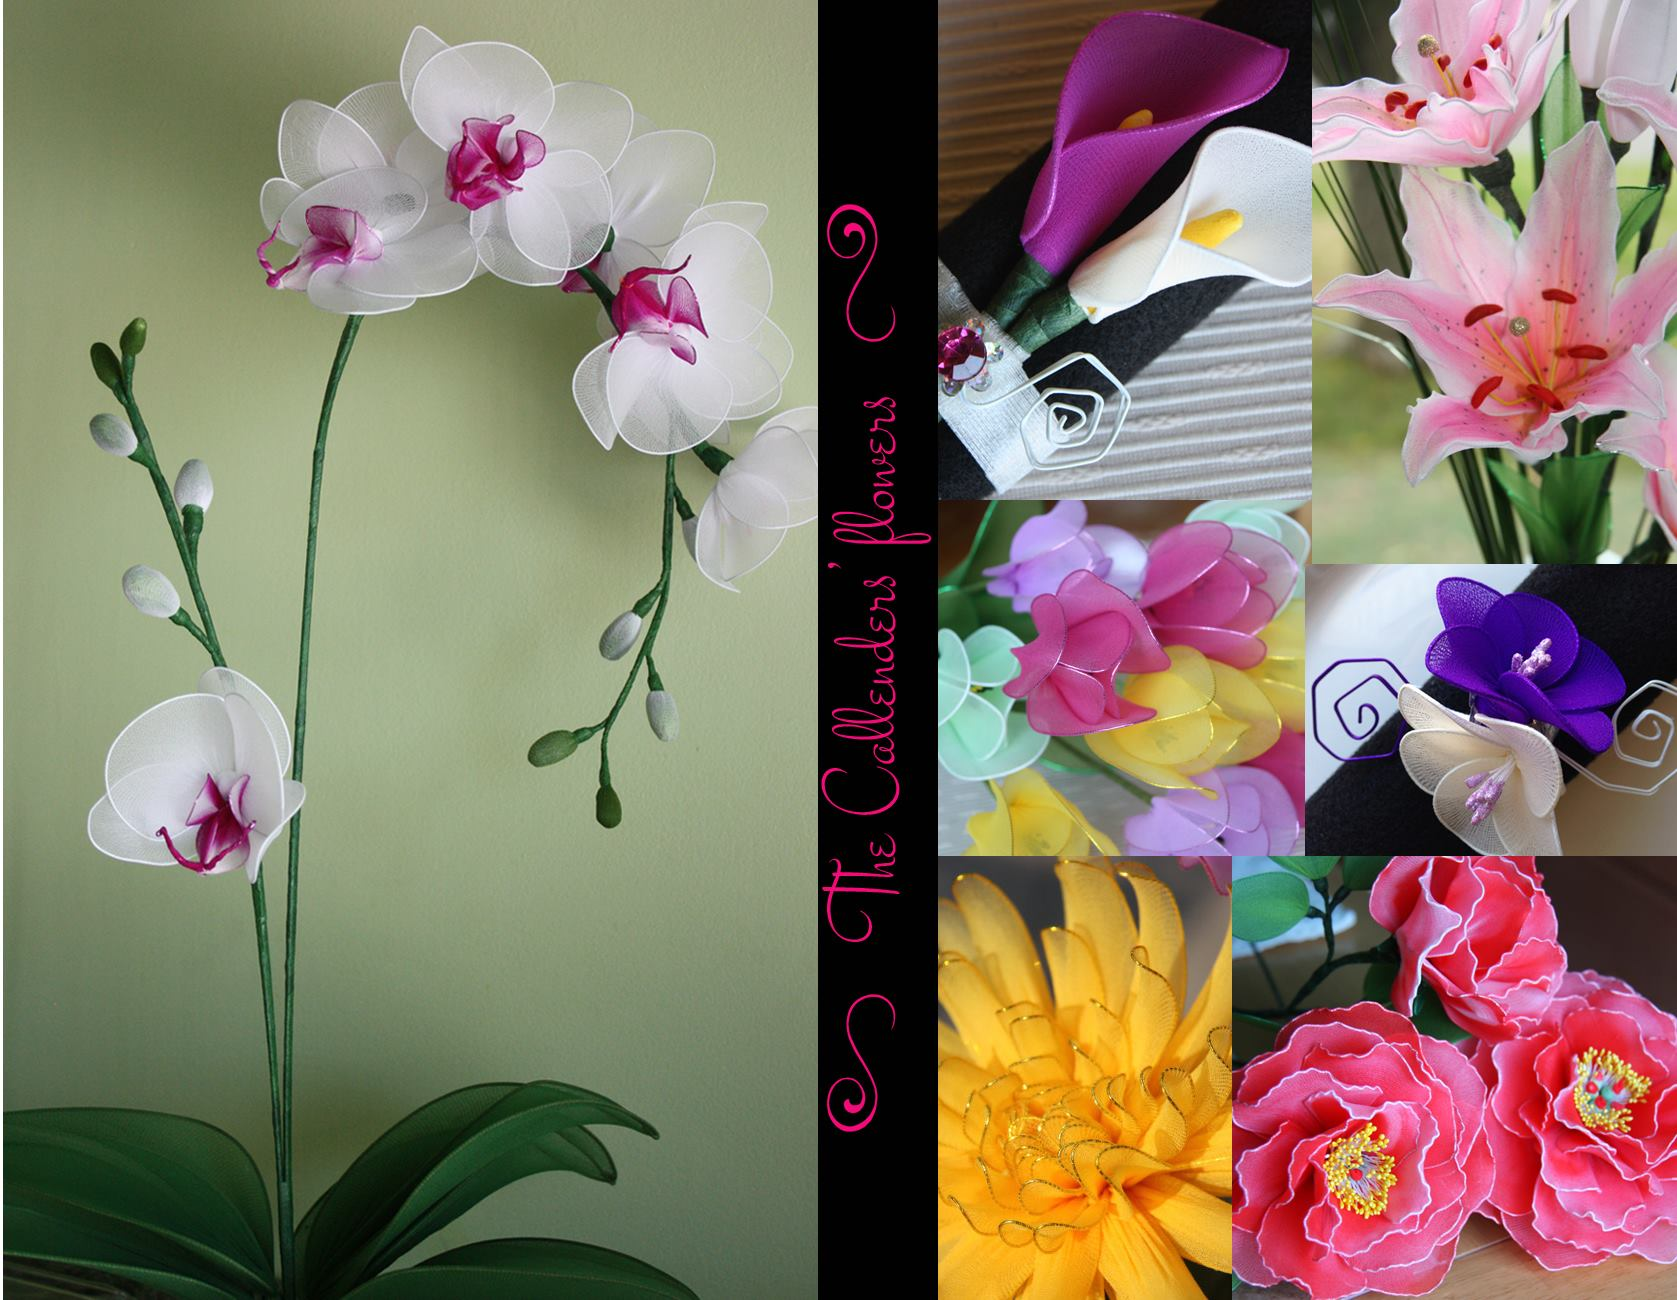 The Callender's Flowers